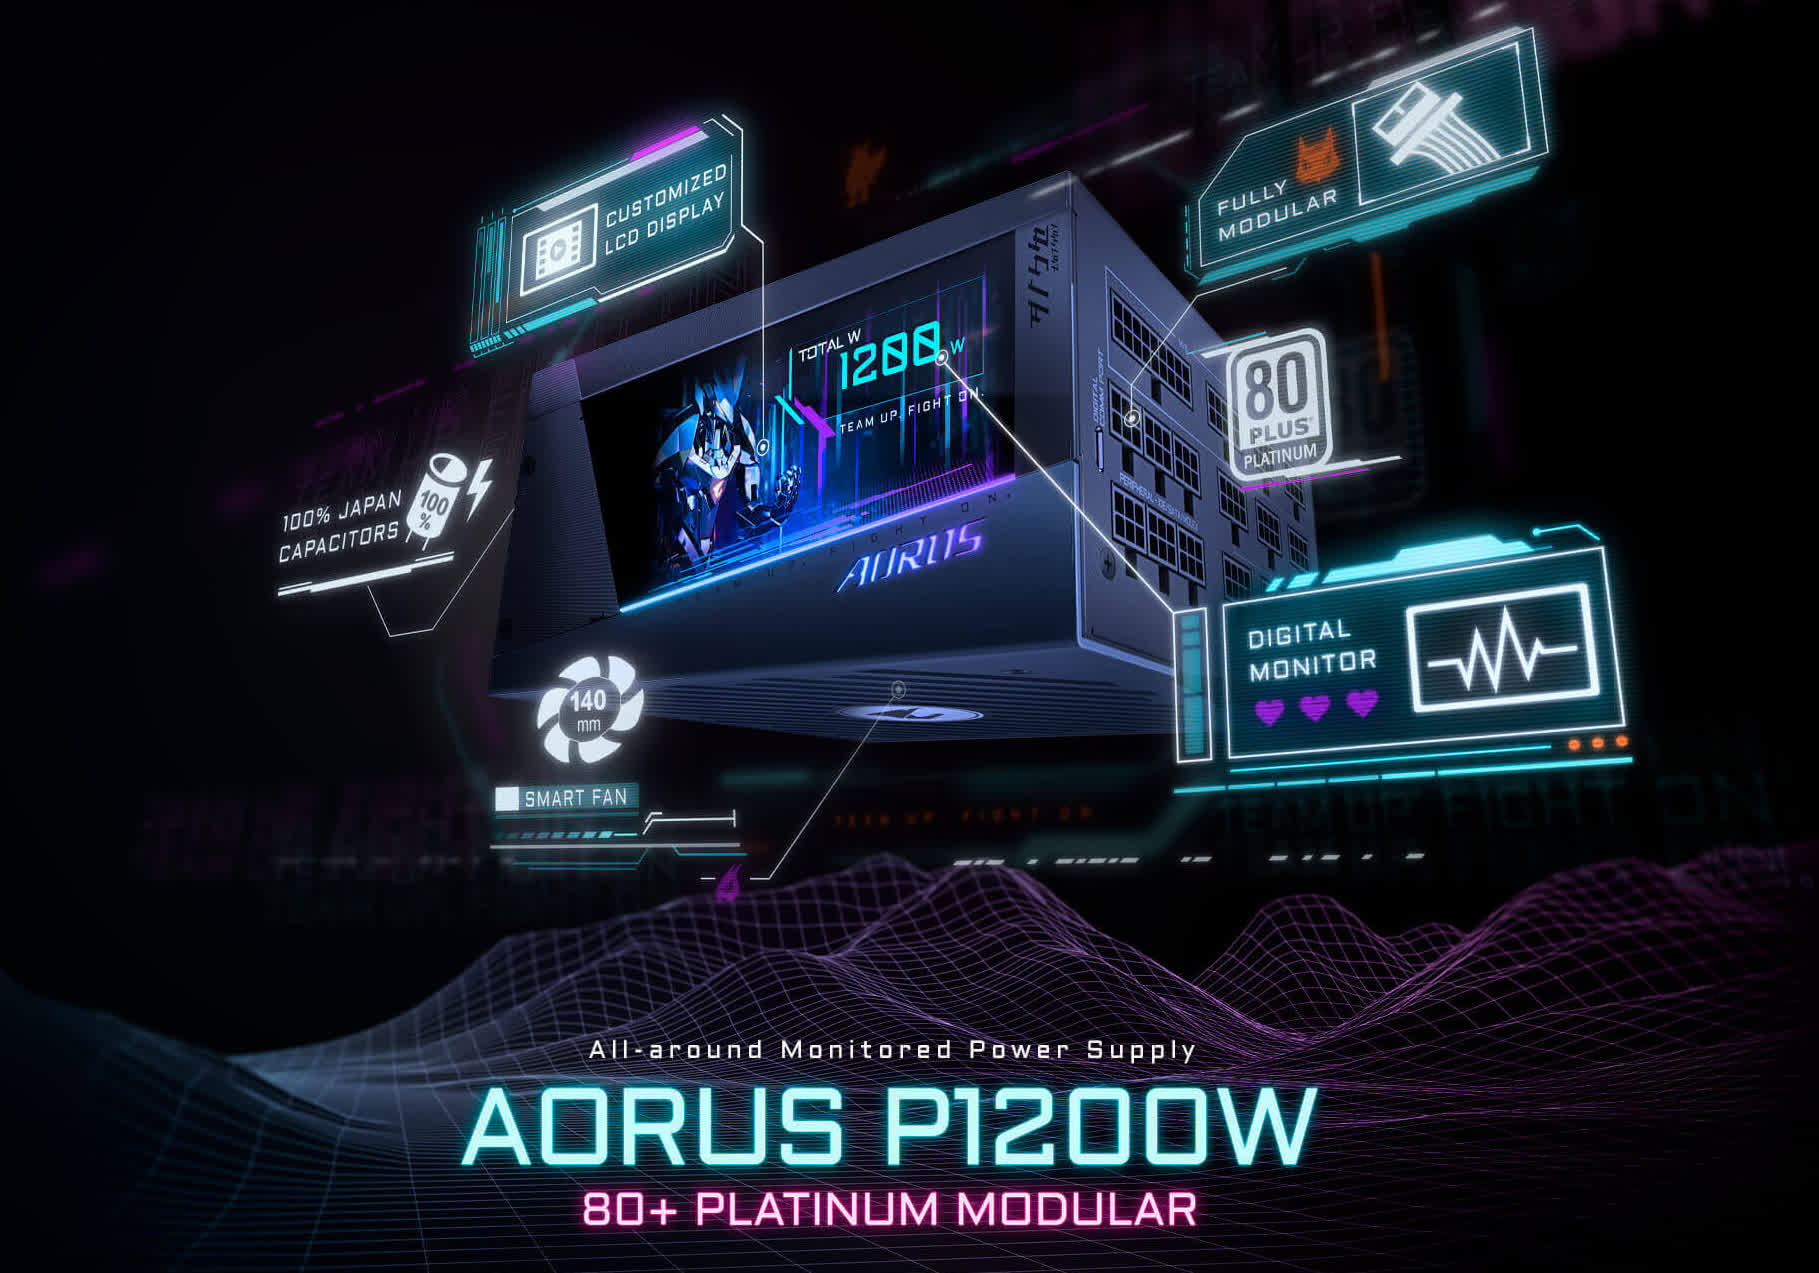 Gigabyte's 1200W Aorus power supply features an integrated LCD panel